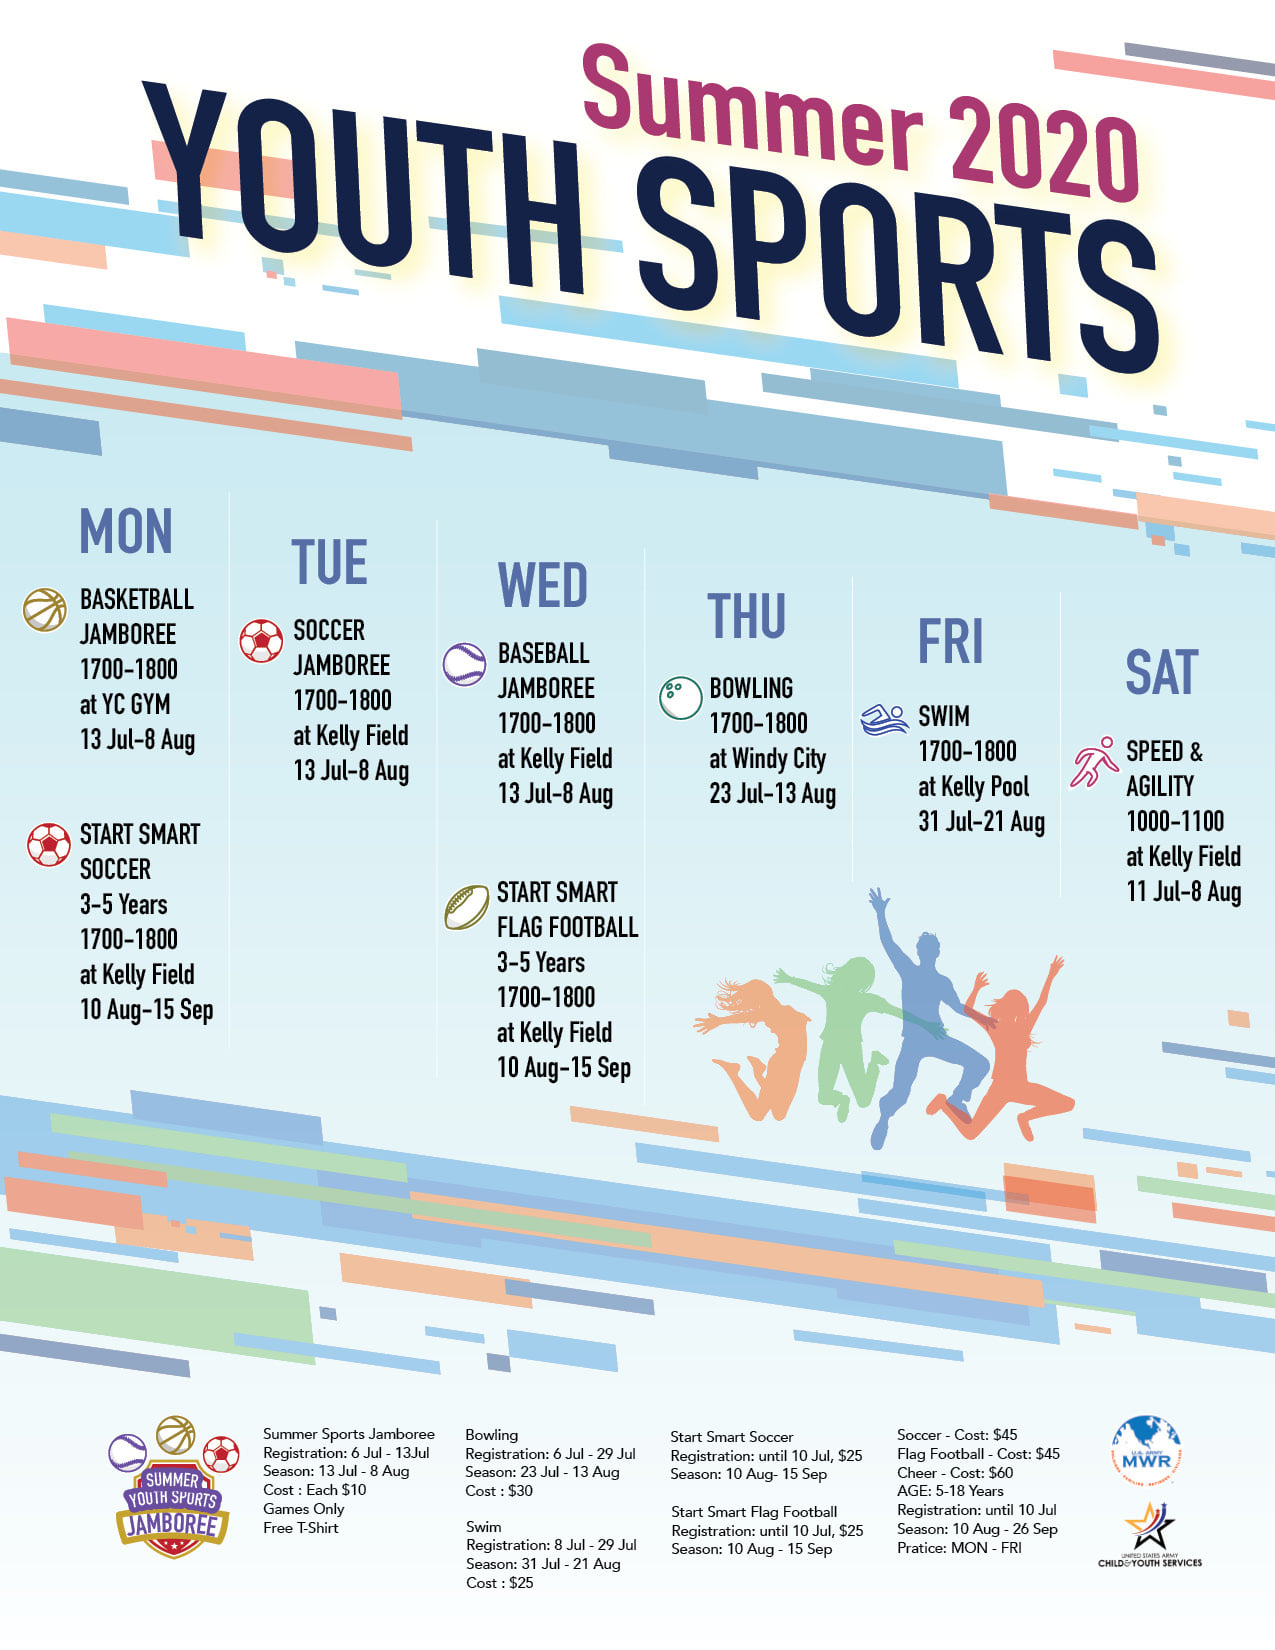 Summer 2020 YOUTH SPORTS